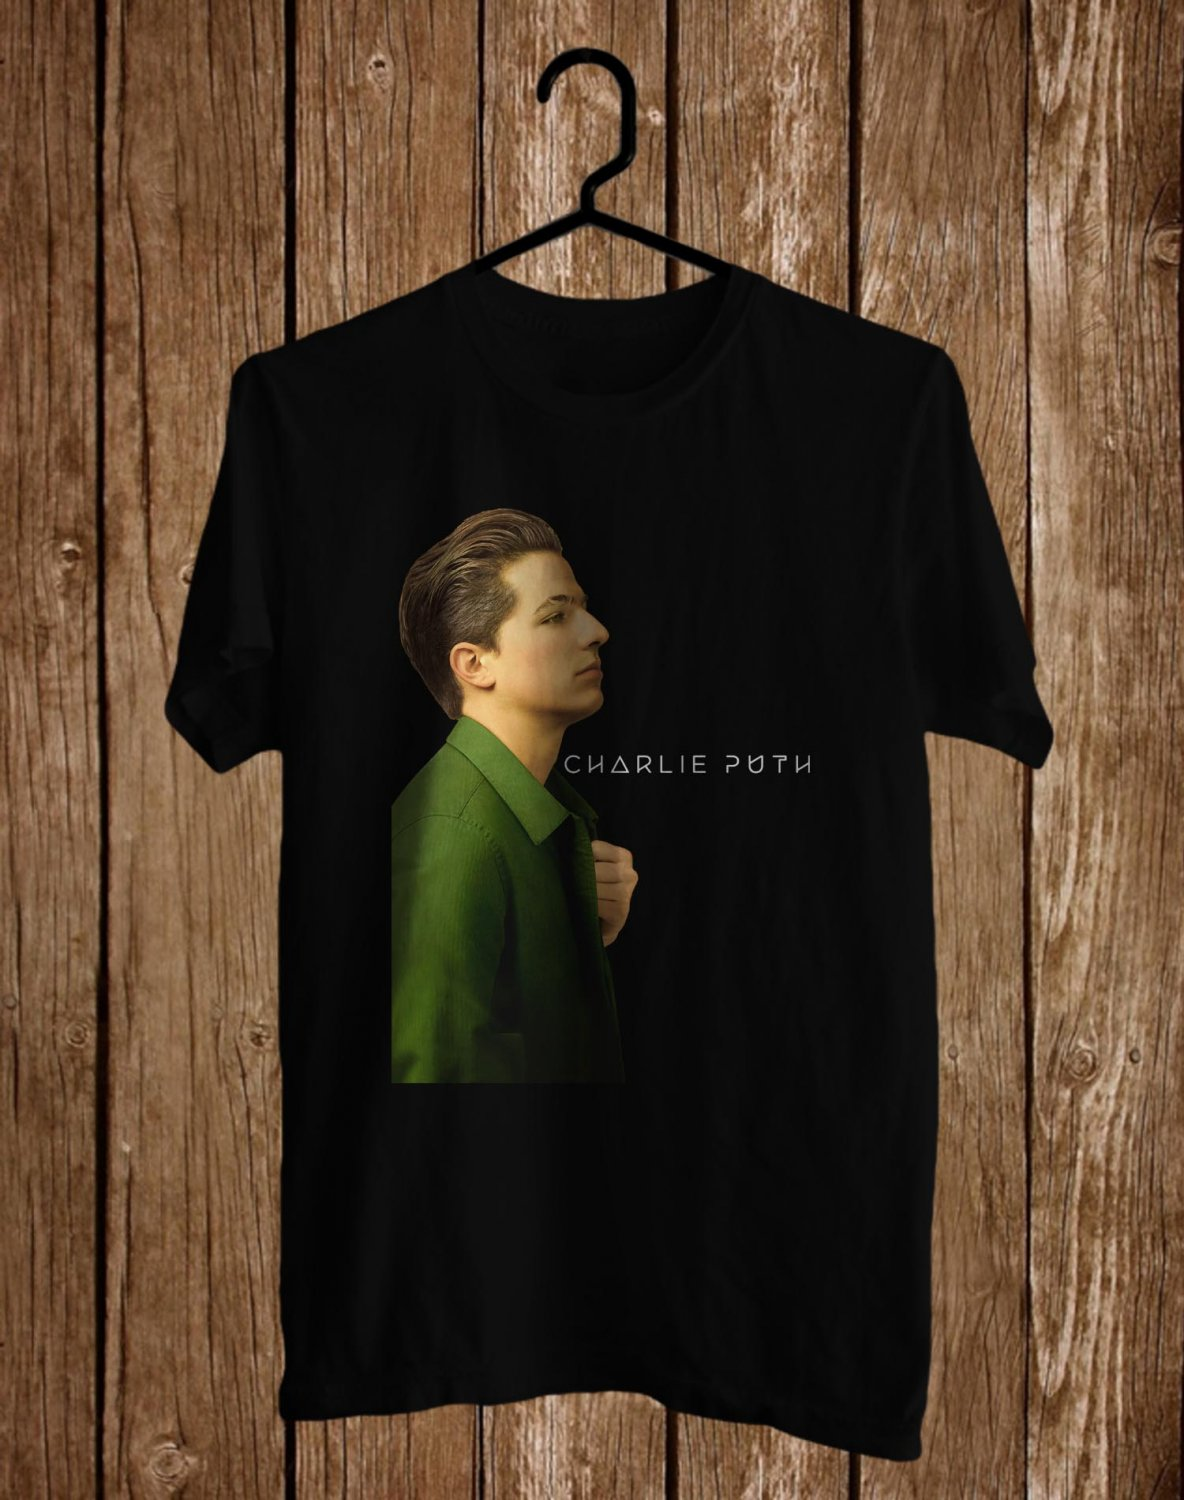 Charlie Puth Tour 2017 Black Tee's Front Side by Complexart z1